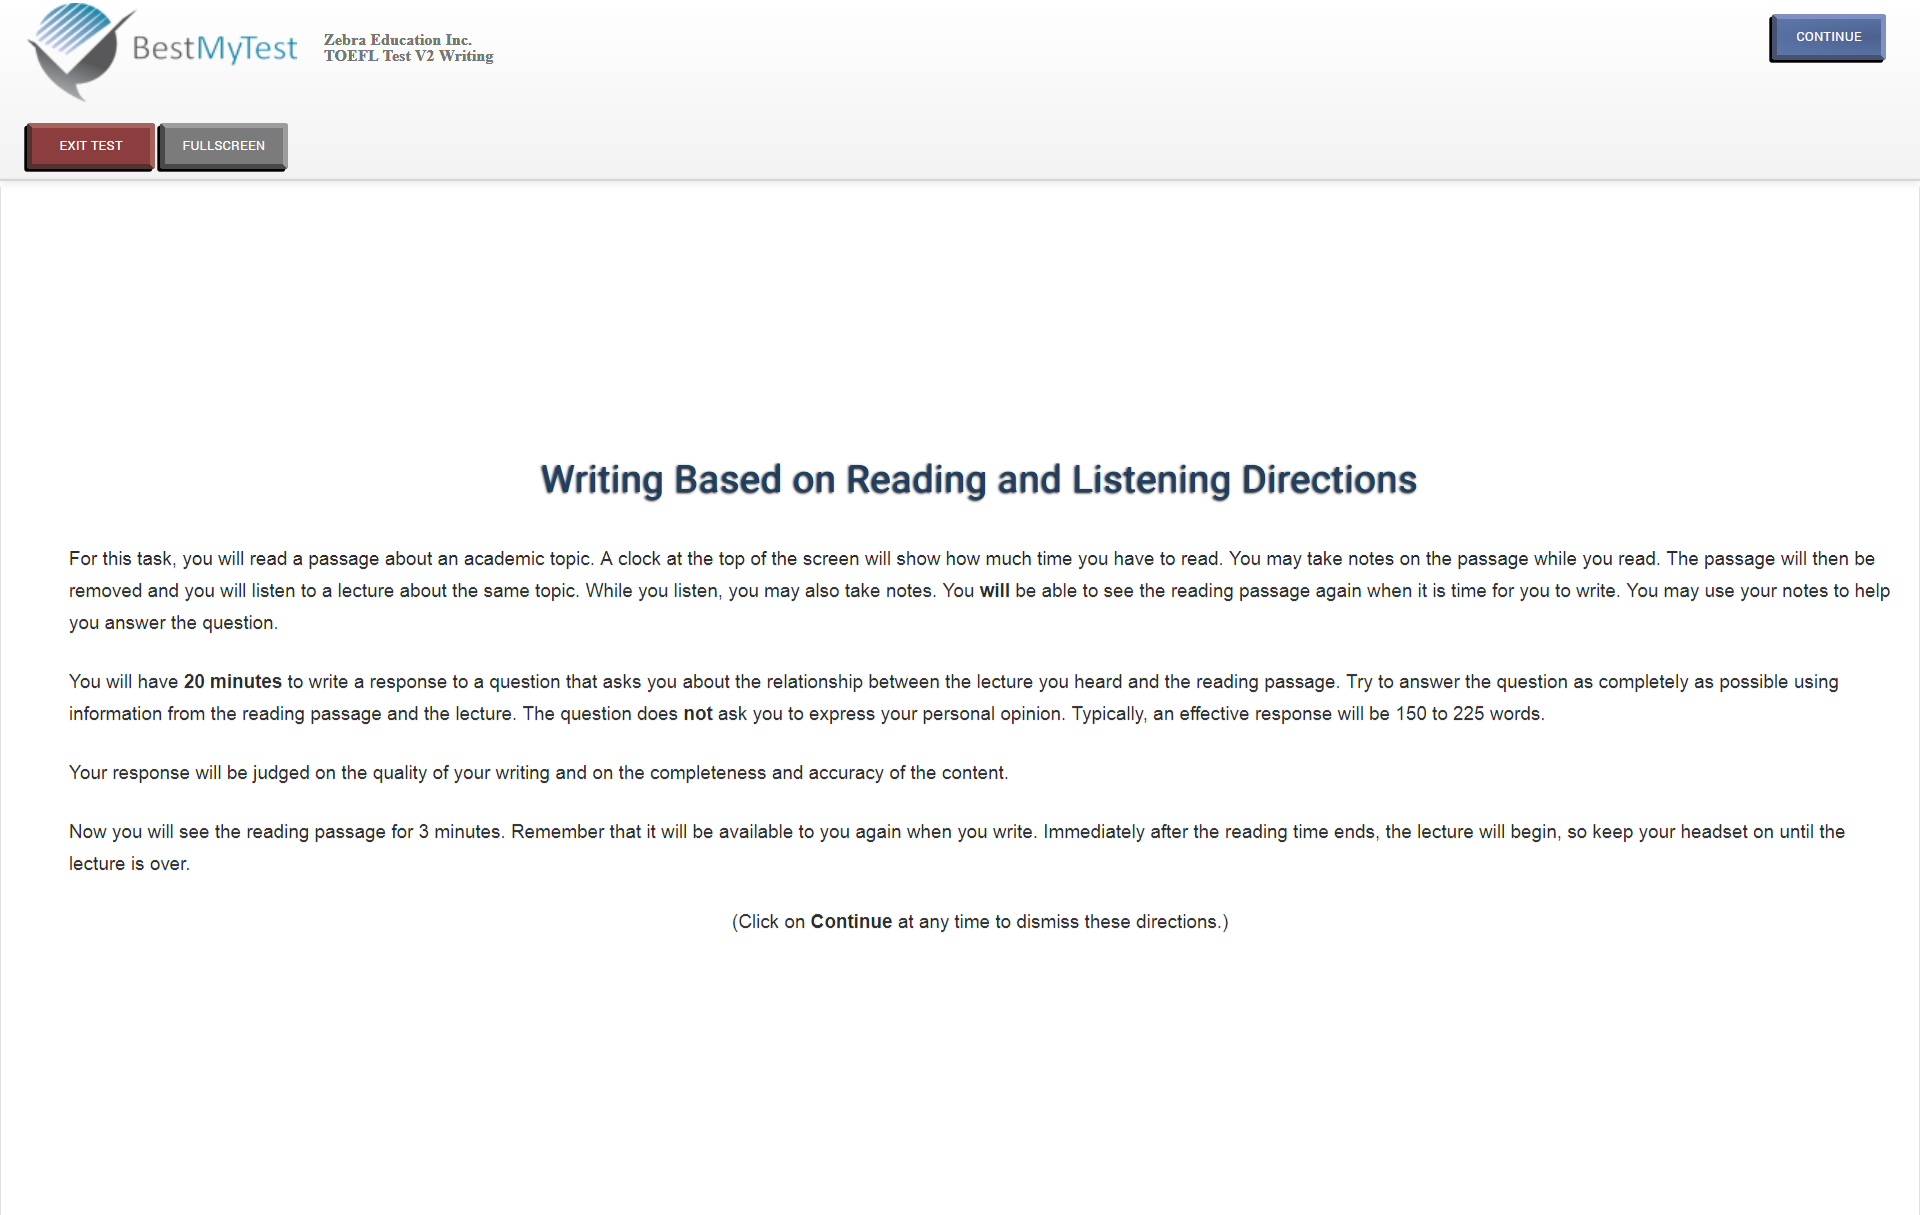 TOEFL writing direction